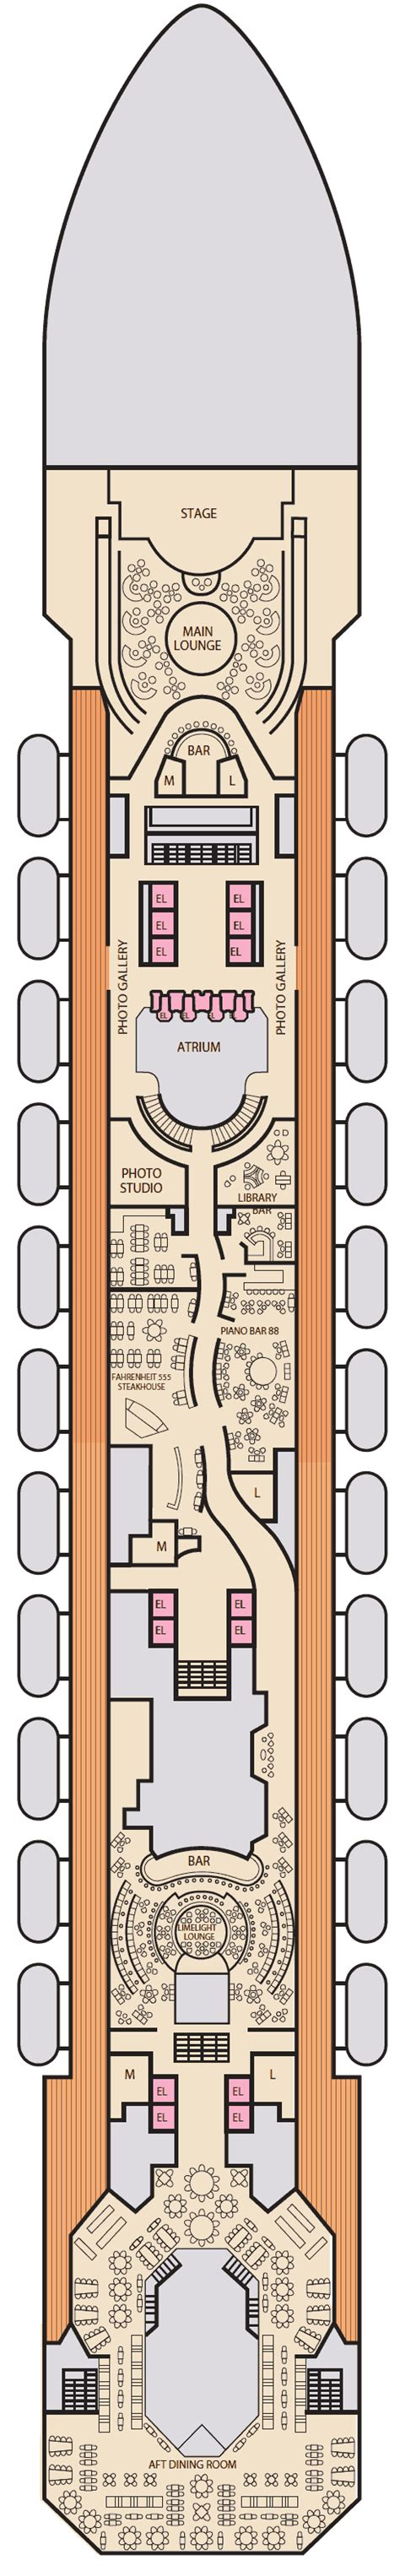 carnival sunshine floor plan carnival sunshine deck plans